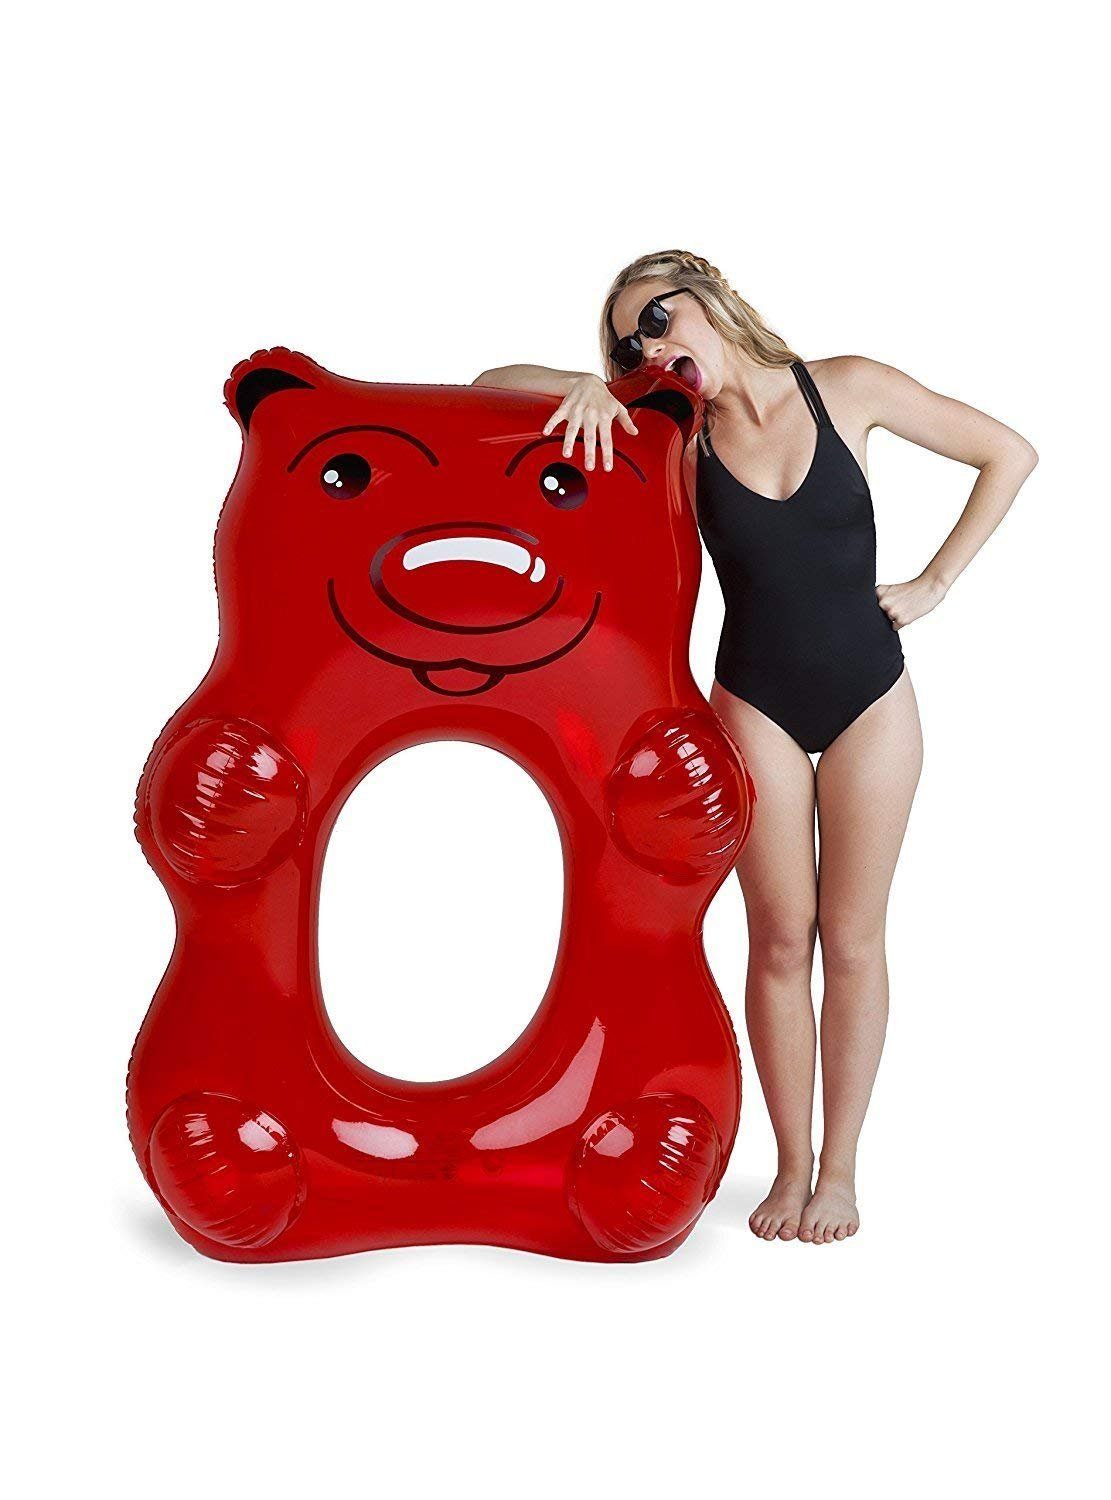 Red or Green Teddy Gummy Bear - Inflatable Pool Toys Float Inflatable Floating Raft PVC Giant Popsicle Pool Lounger Air Mattress Blow Up Beach Toy for Kids Adults Summer Holiday - Made of Premium Strong PVC Material - By Guilty Gadgets